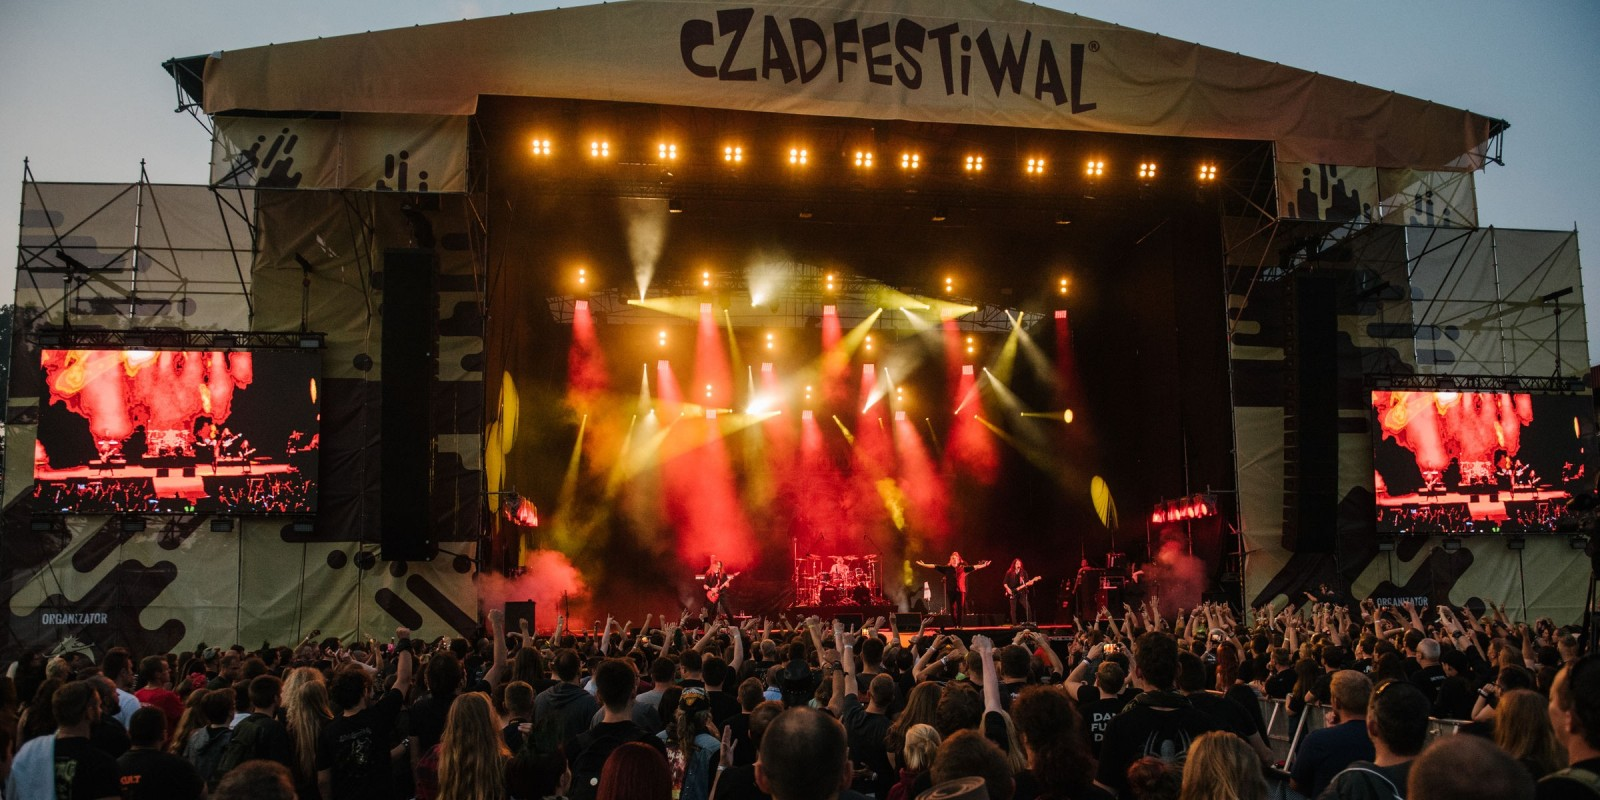 Czad Festival - main music stage